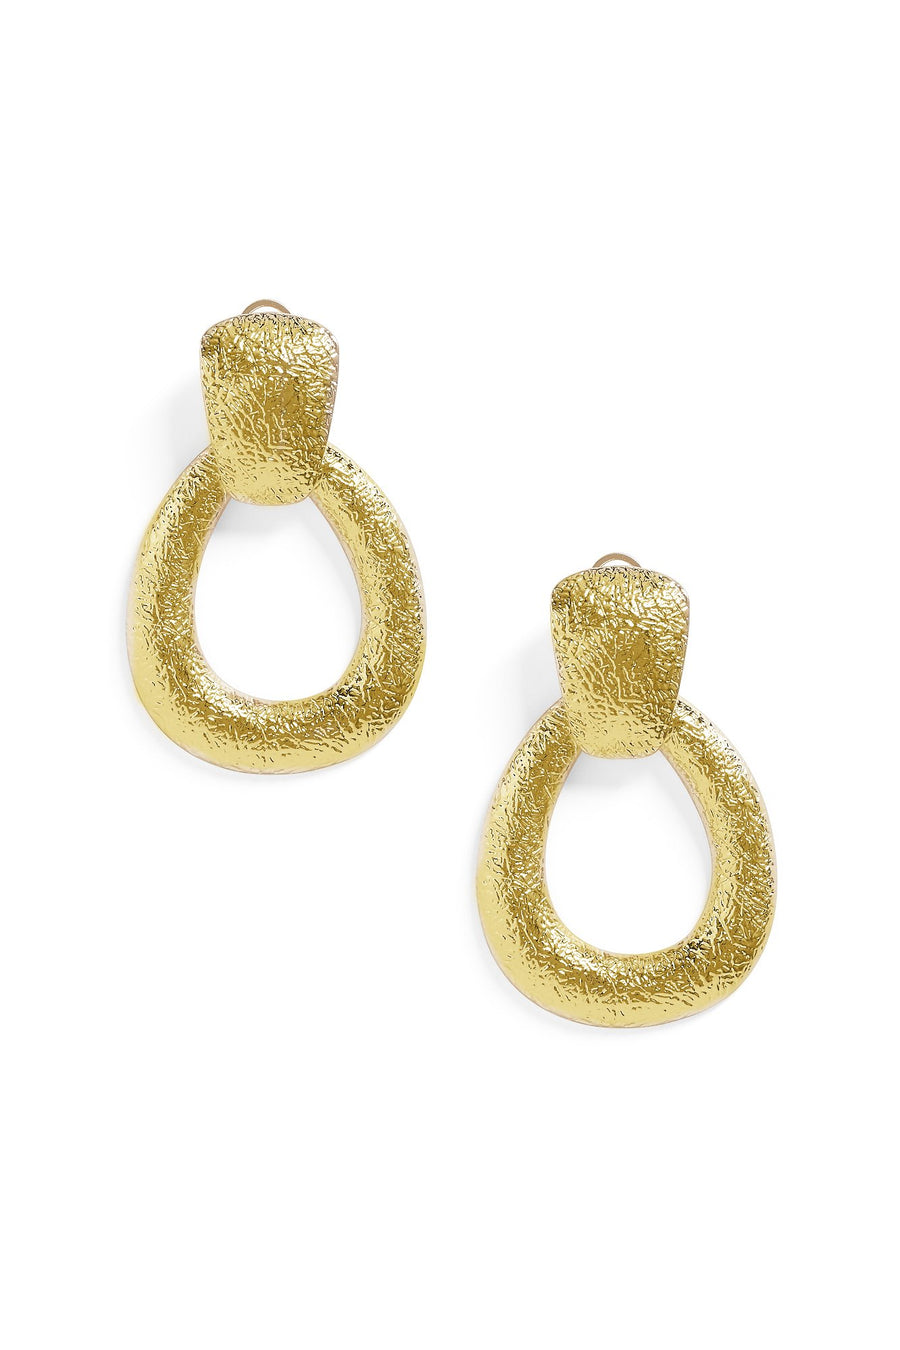 Truth Be Gold Earrings (Gold)